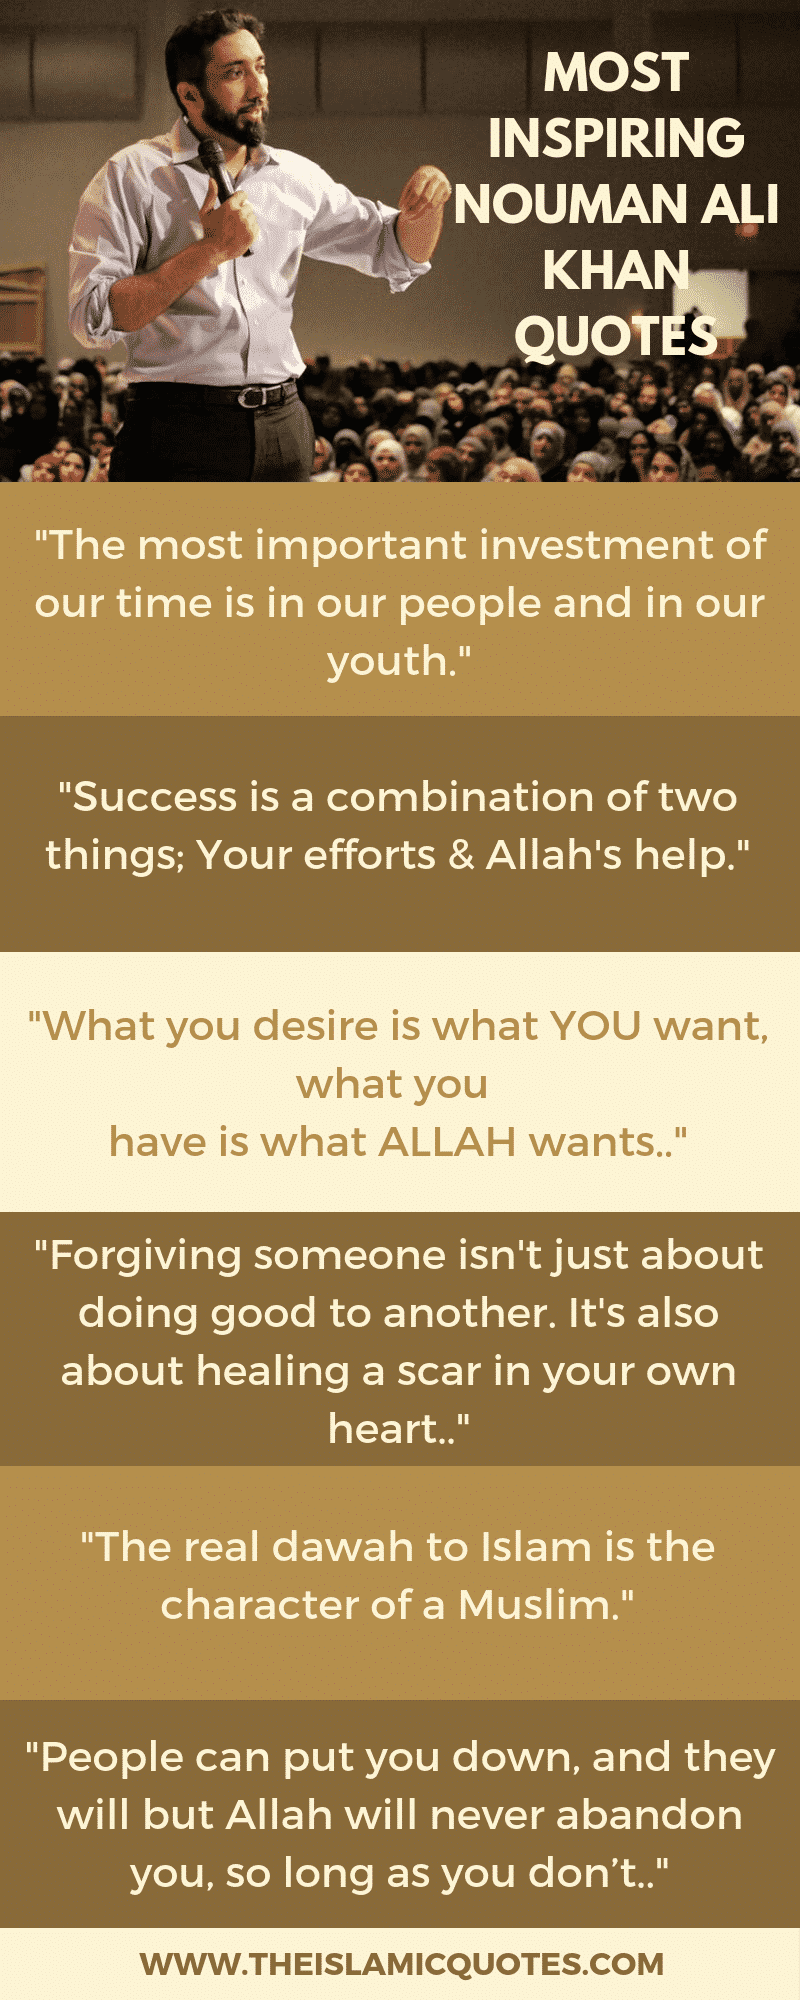 35 Inspirational Islamic Quotes Sayings By Nouman Ali Khan